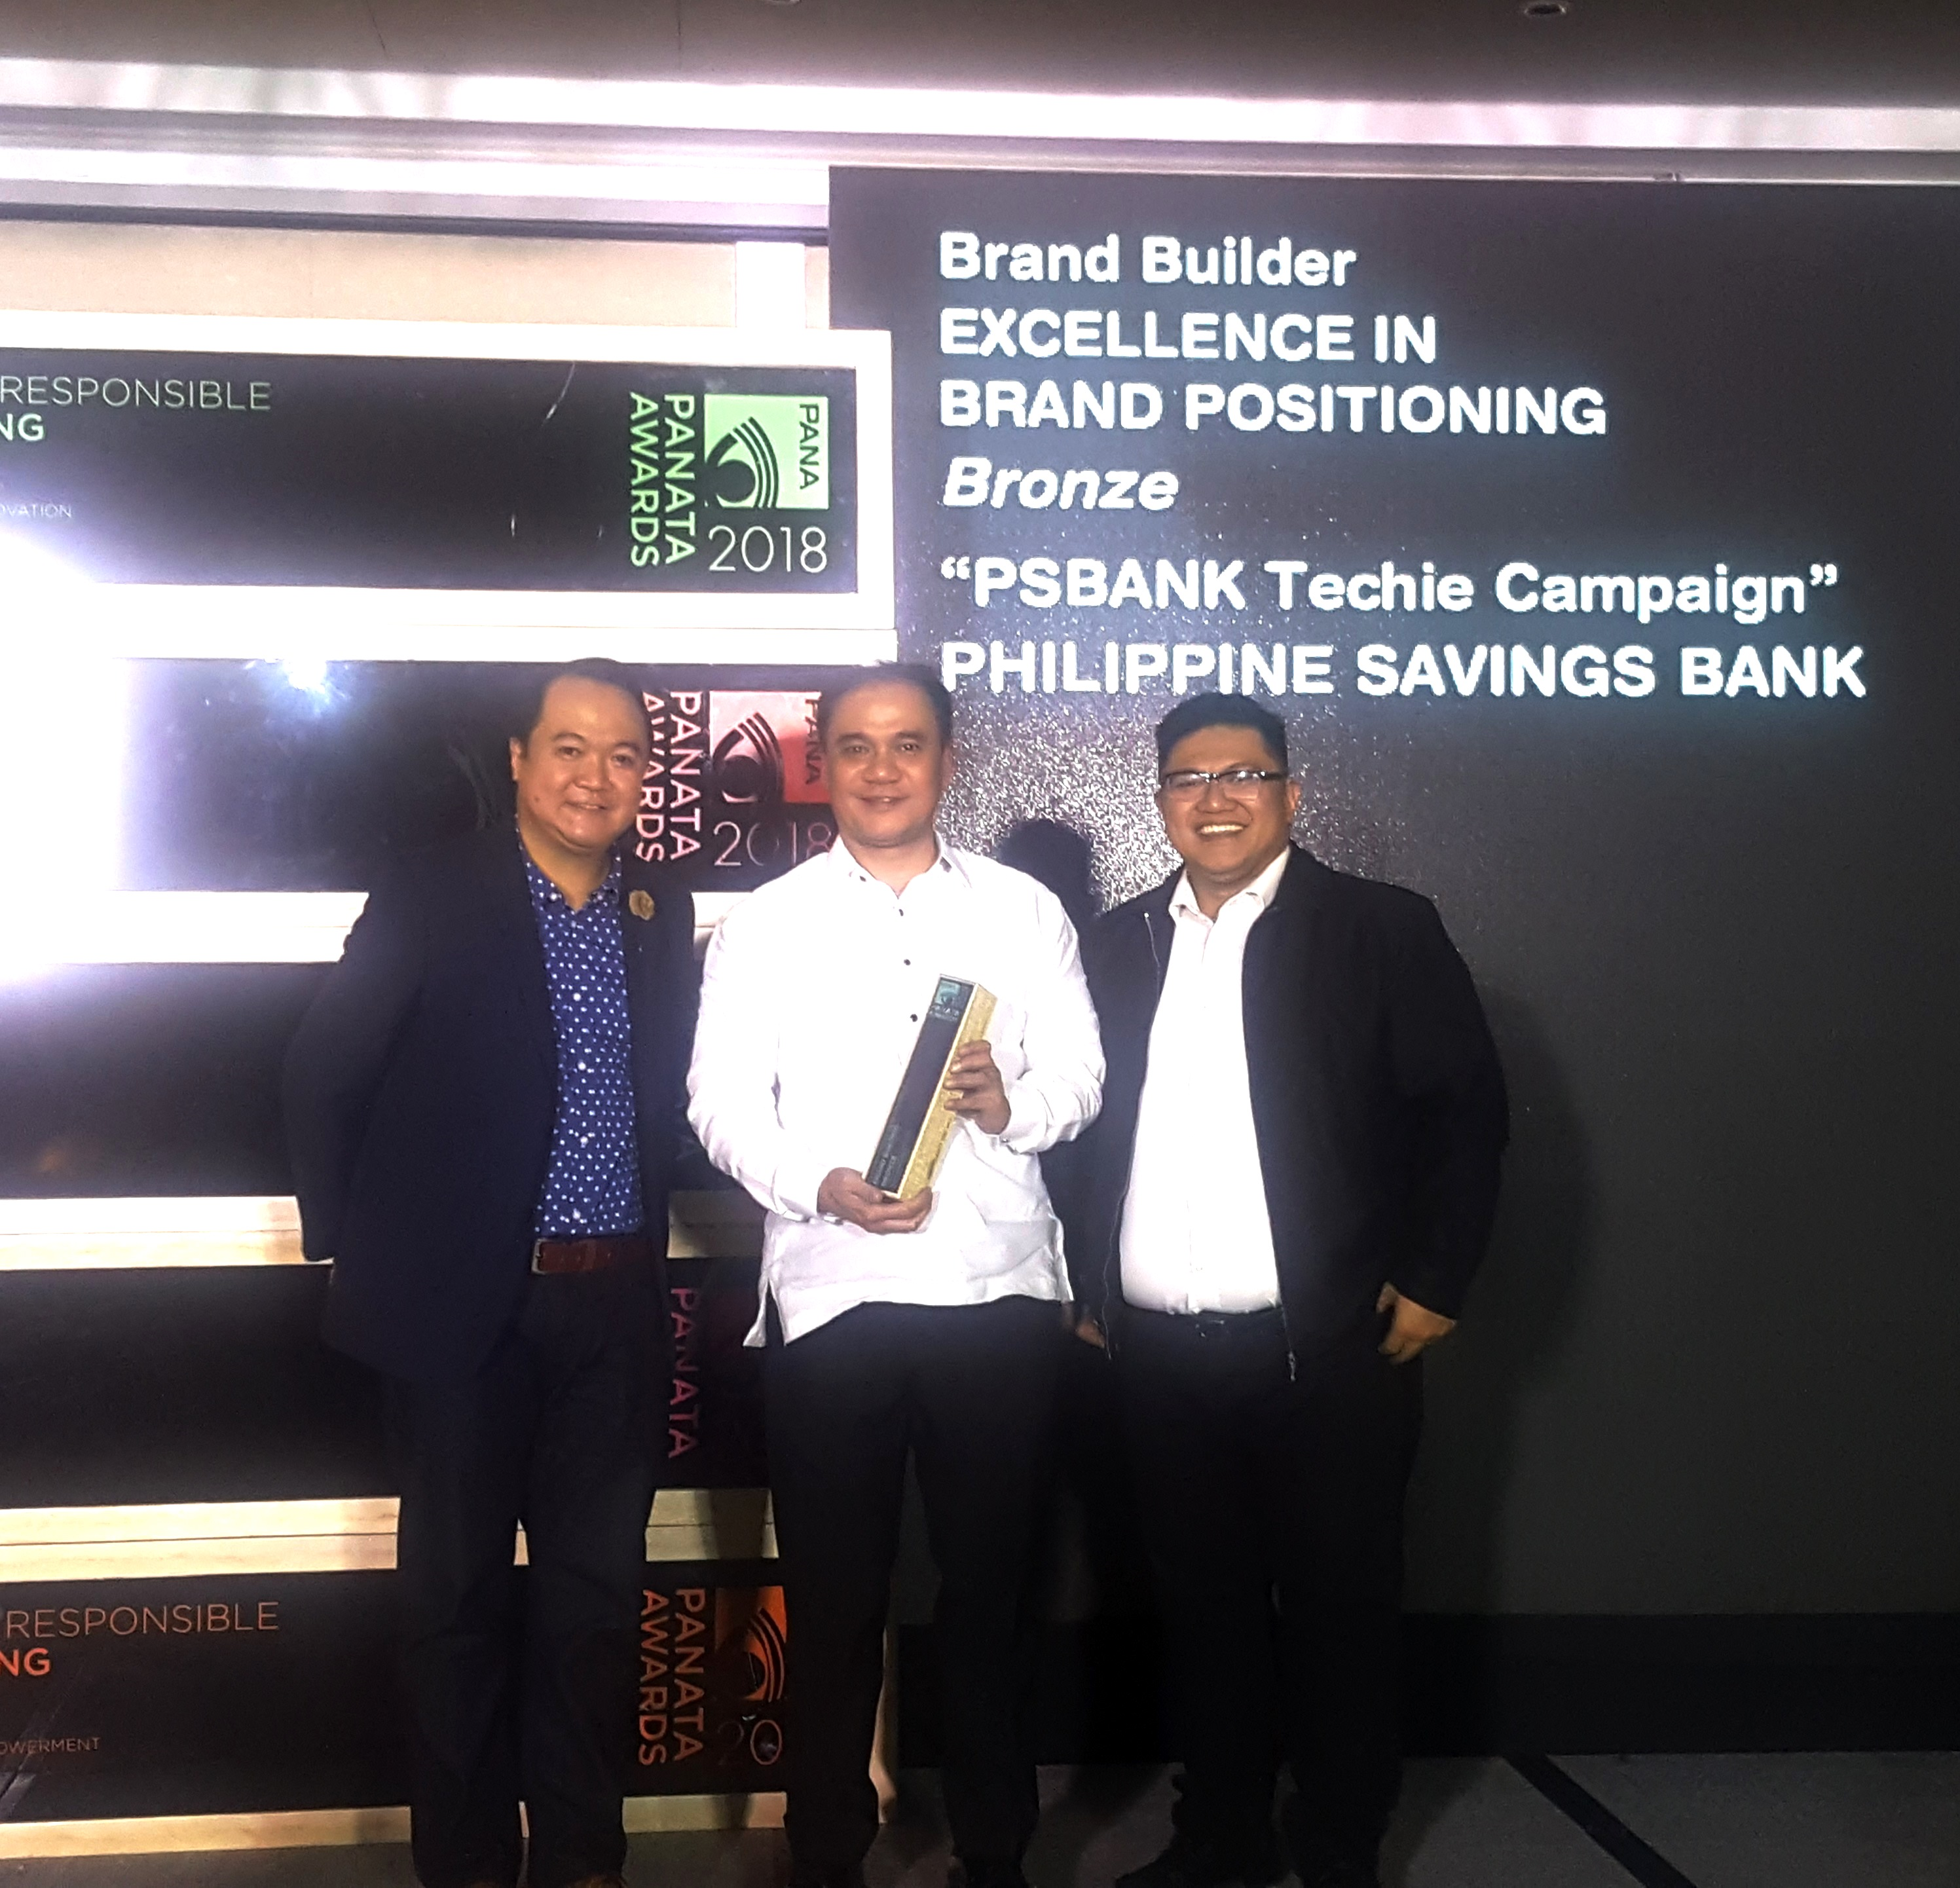 PSBank clinches Bronze in Brand Builder Excellence